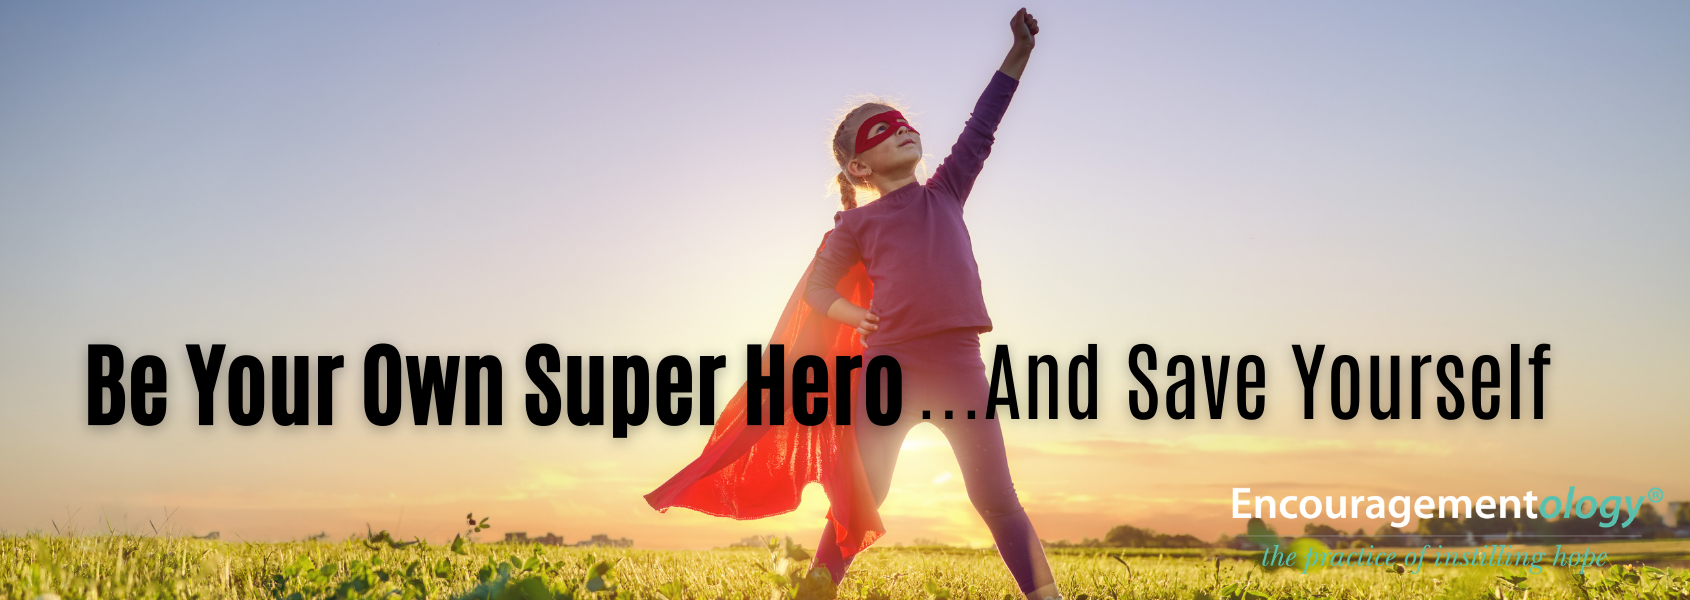 Being Your Own Superhero